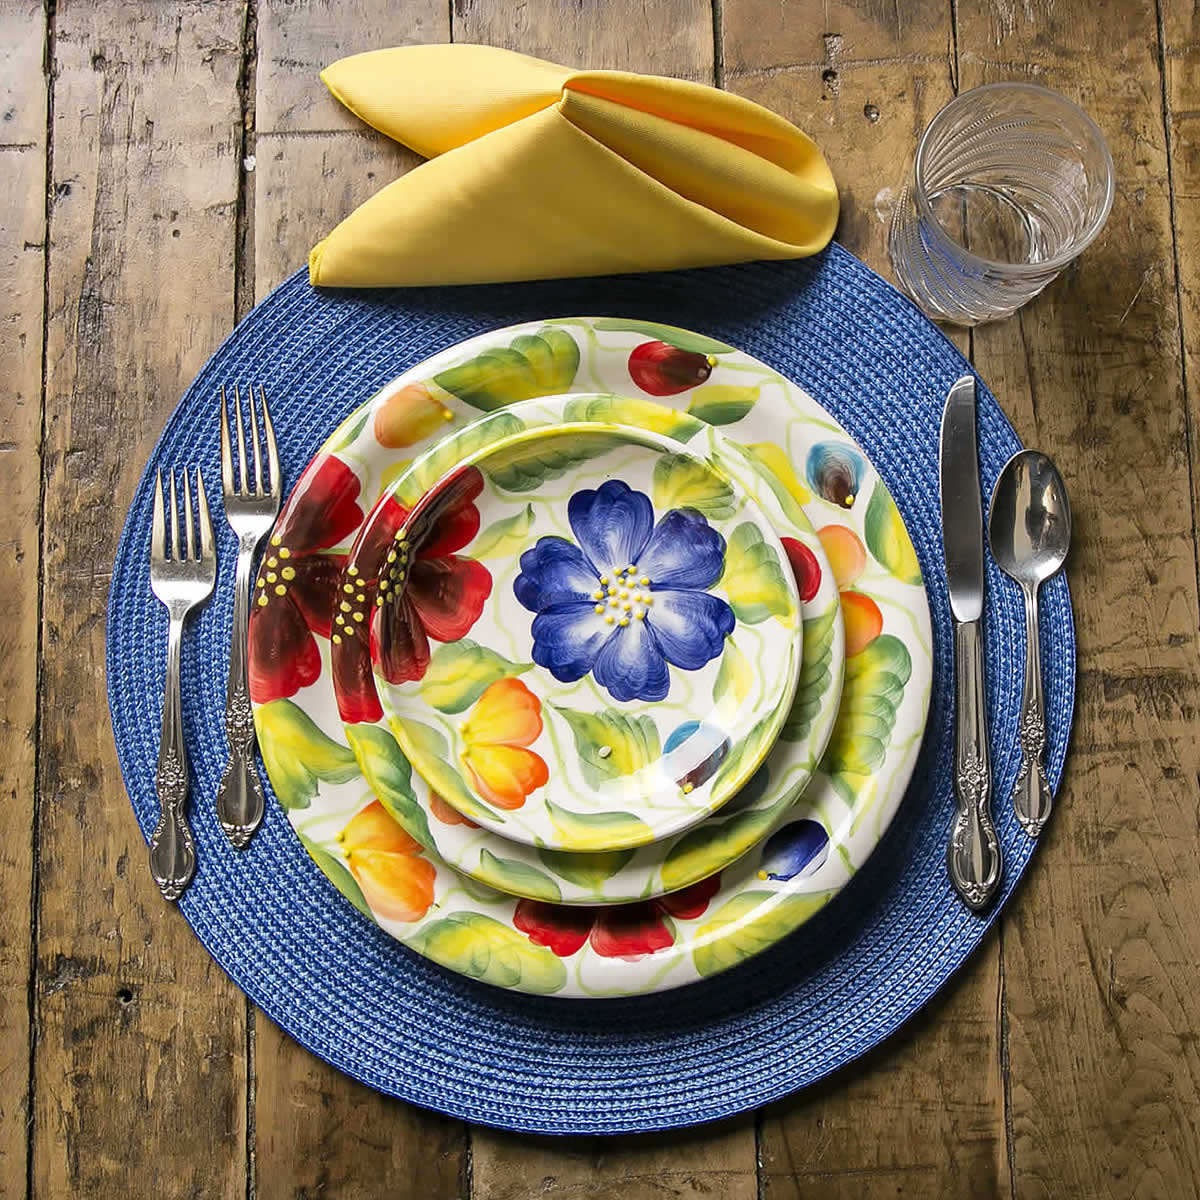 Tableware & Home | I See Spain - Handcrafted Spanish Pottery Cookware Tableware